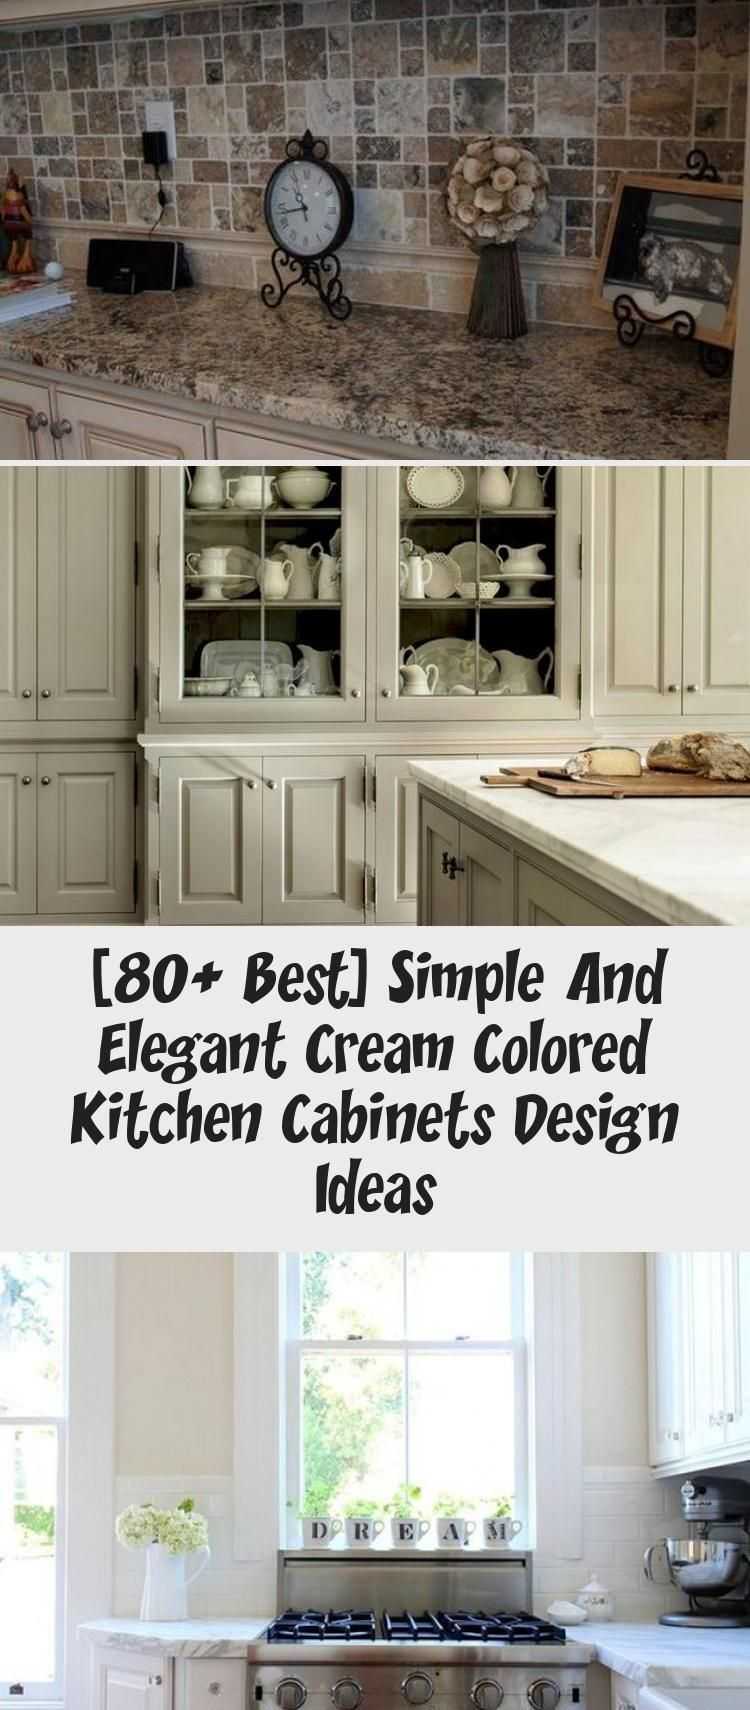 Photo of [80+ Best] Simple And Elegant Cream Colored Kitchen Cabinets Design Ideas – KTCHN